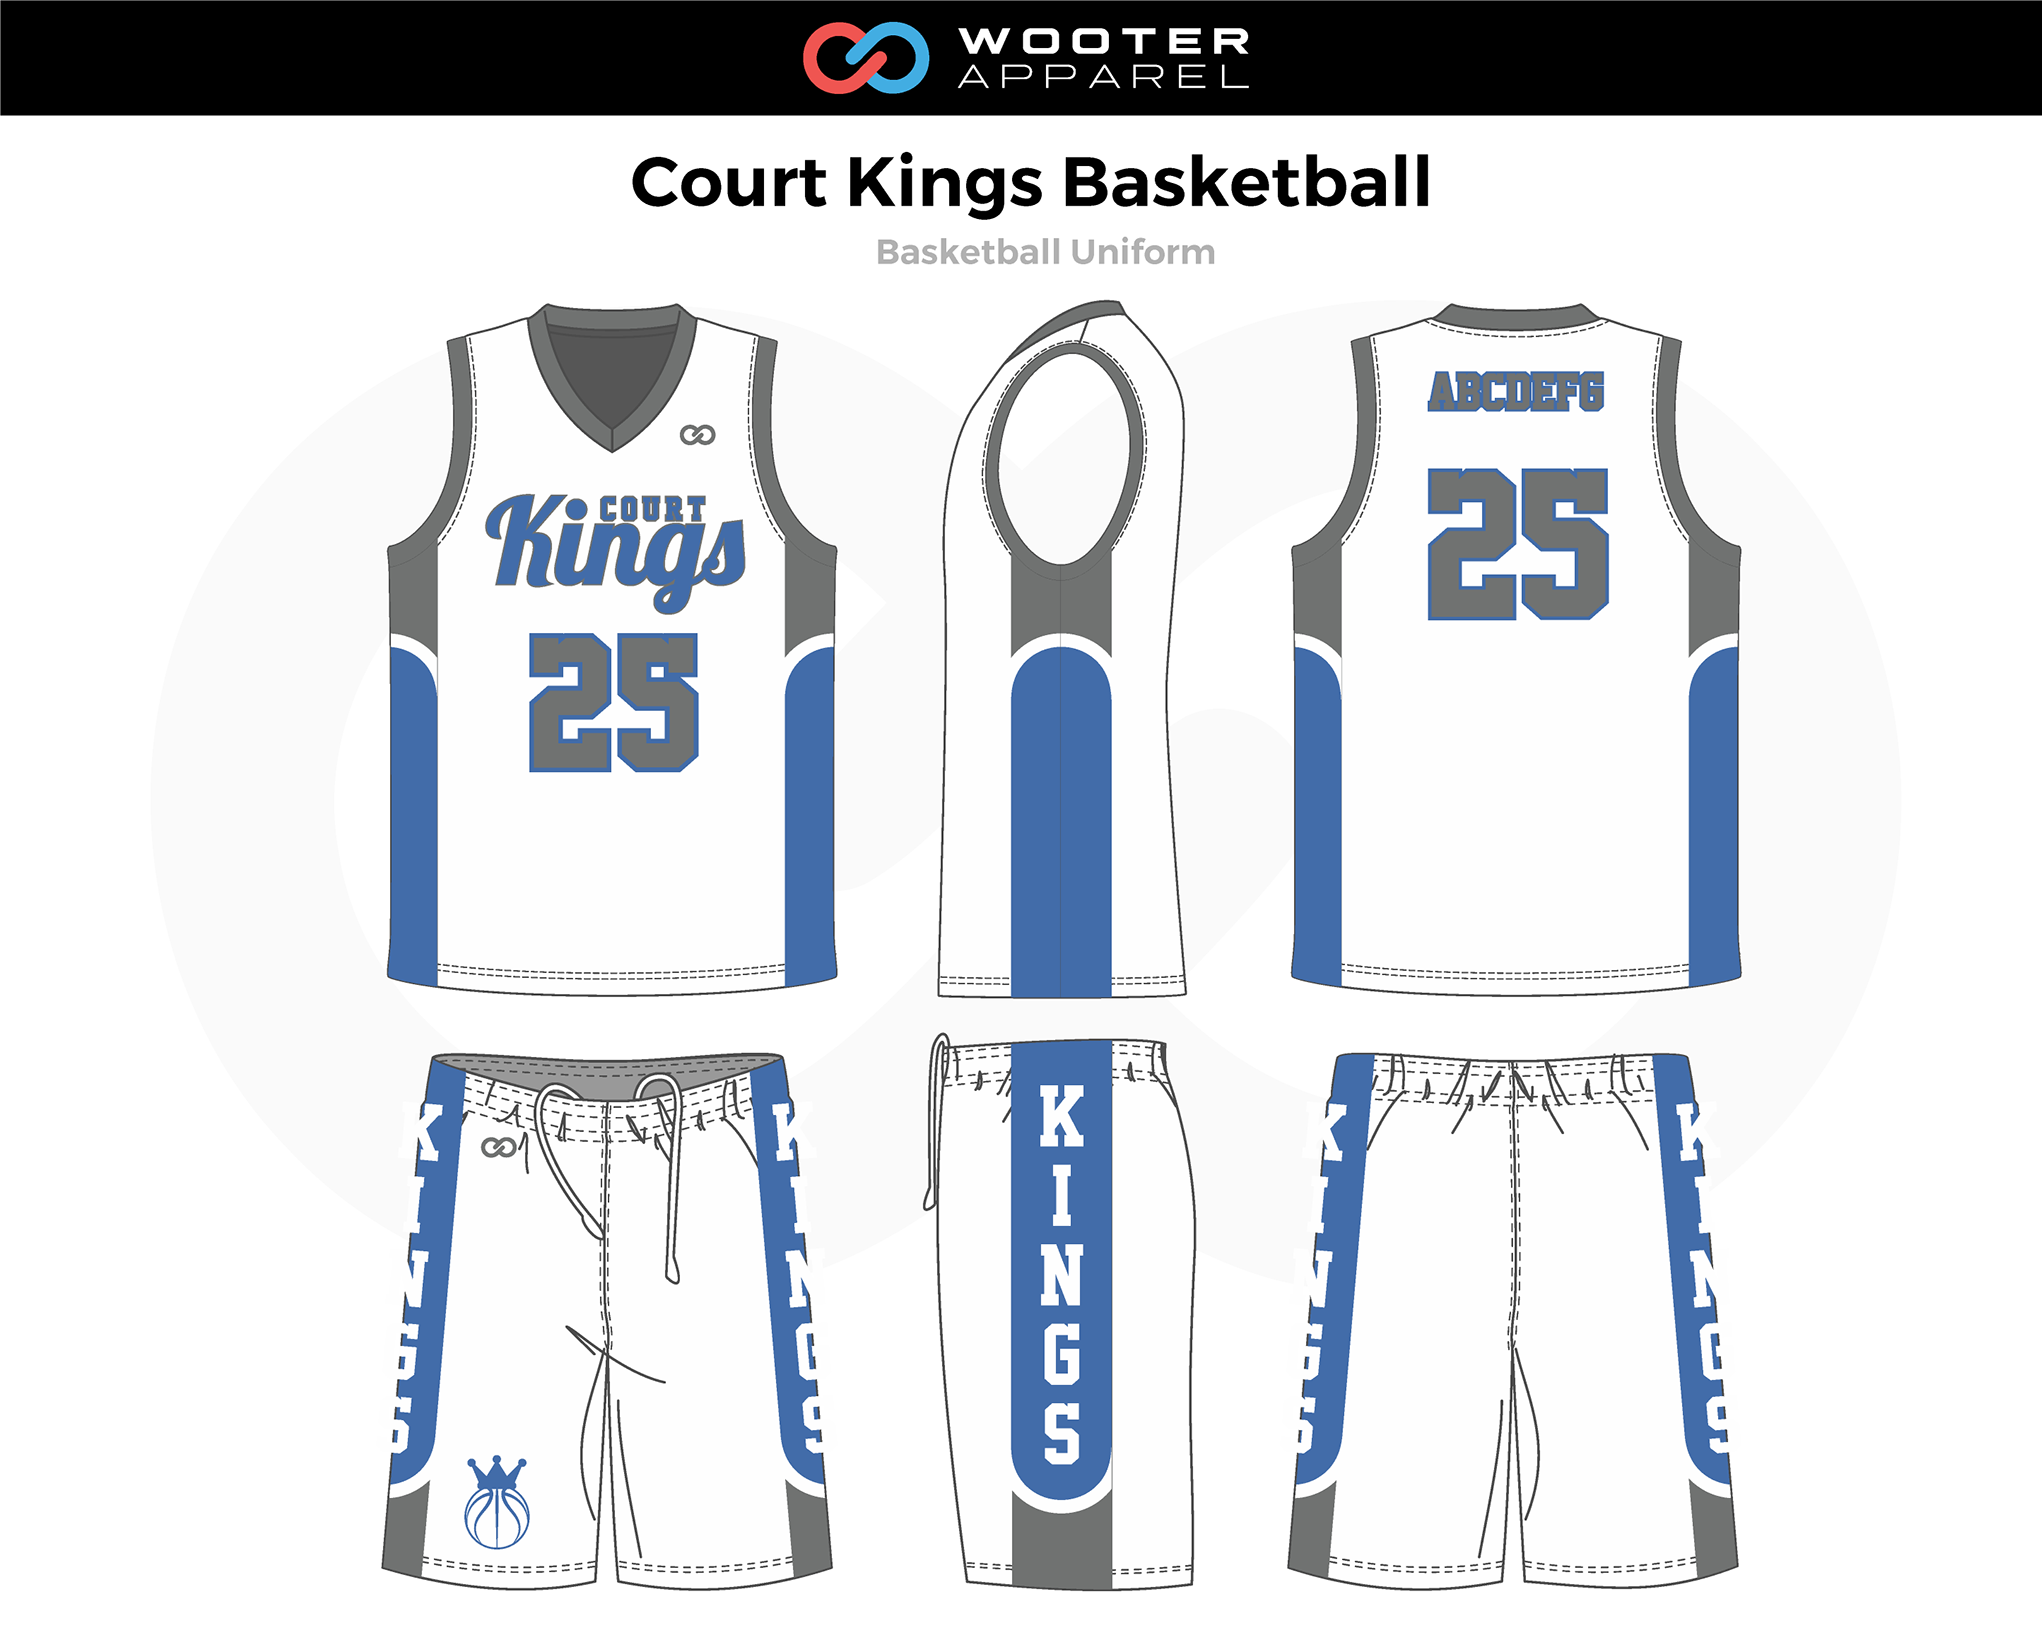 COURT KINGS White Blue Gray Basketball Uniform, Jersey and Shorts